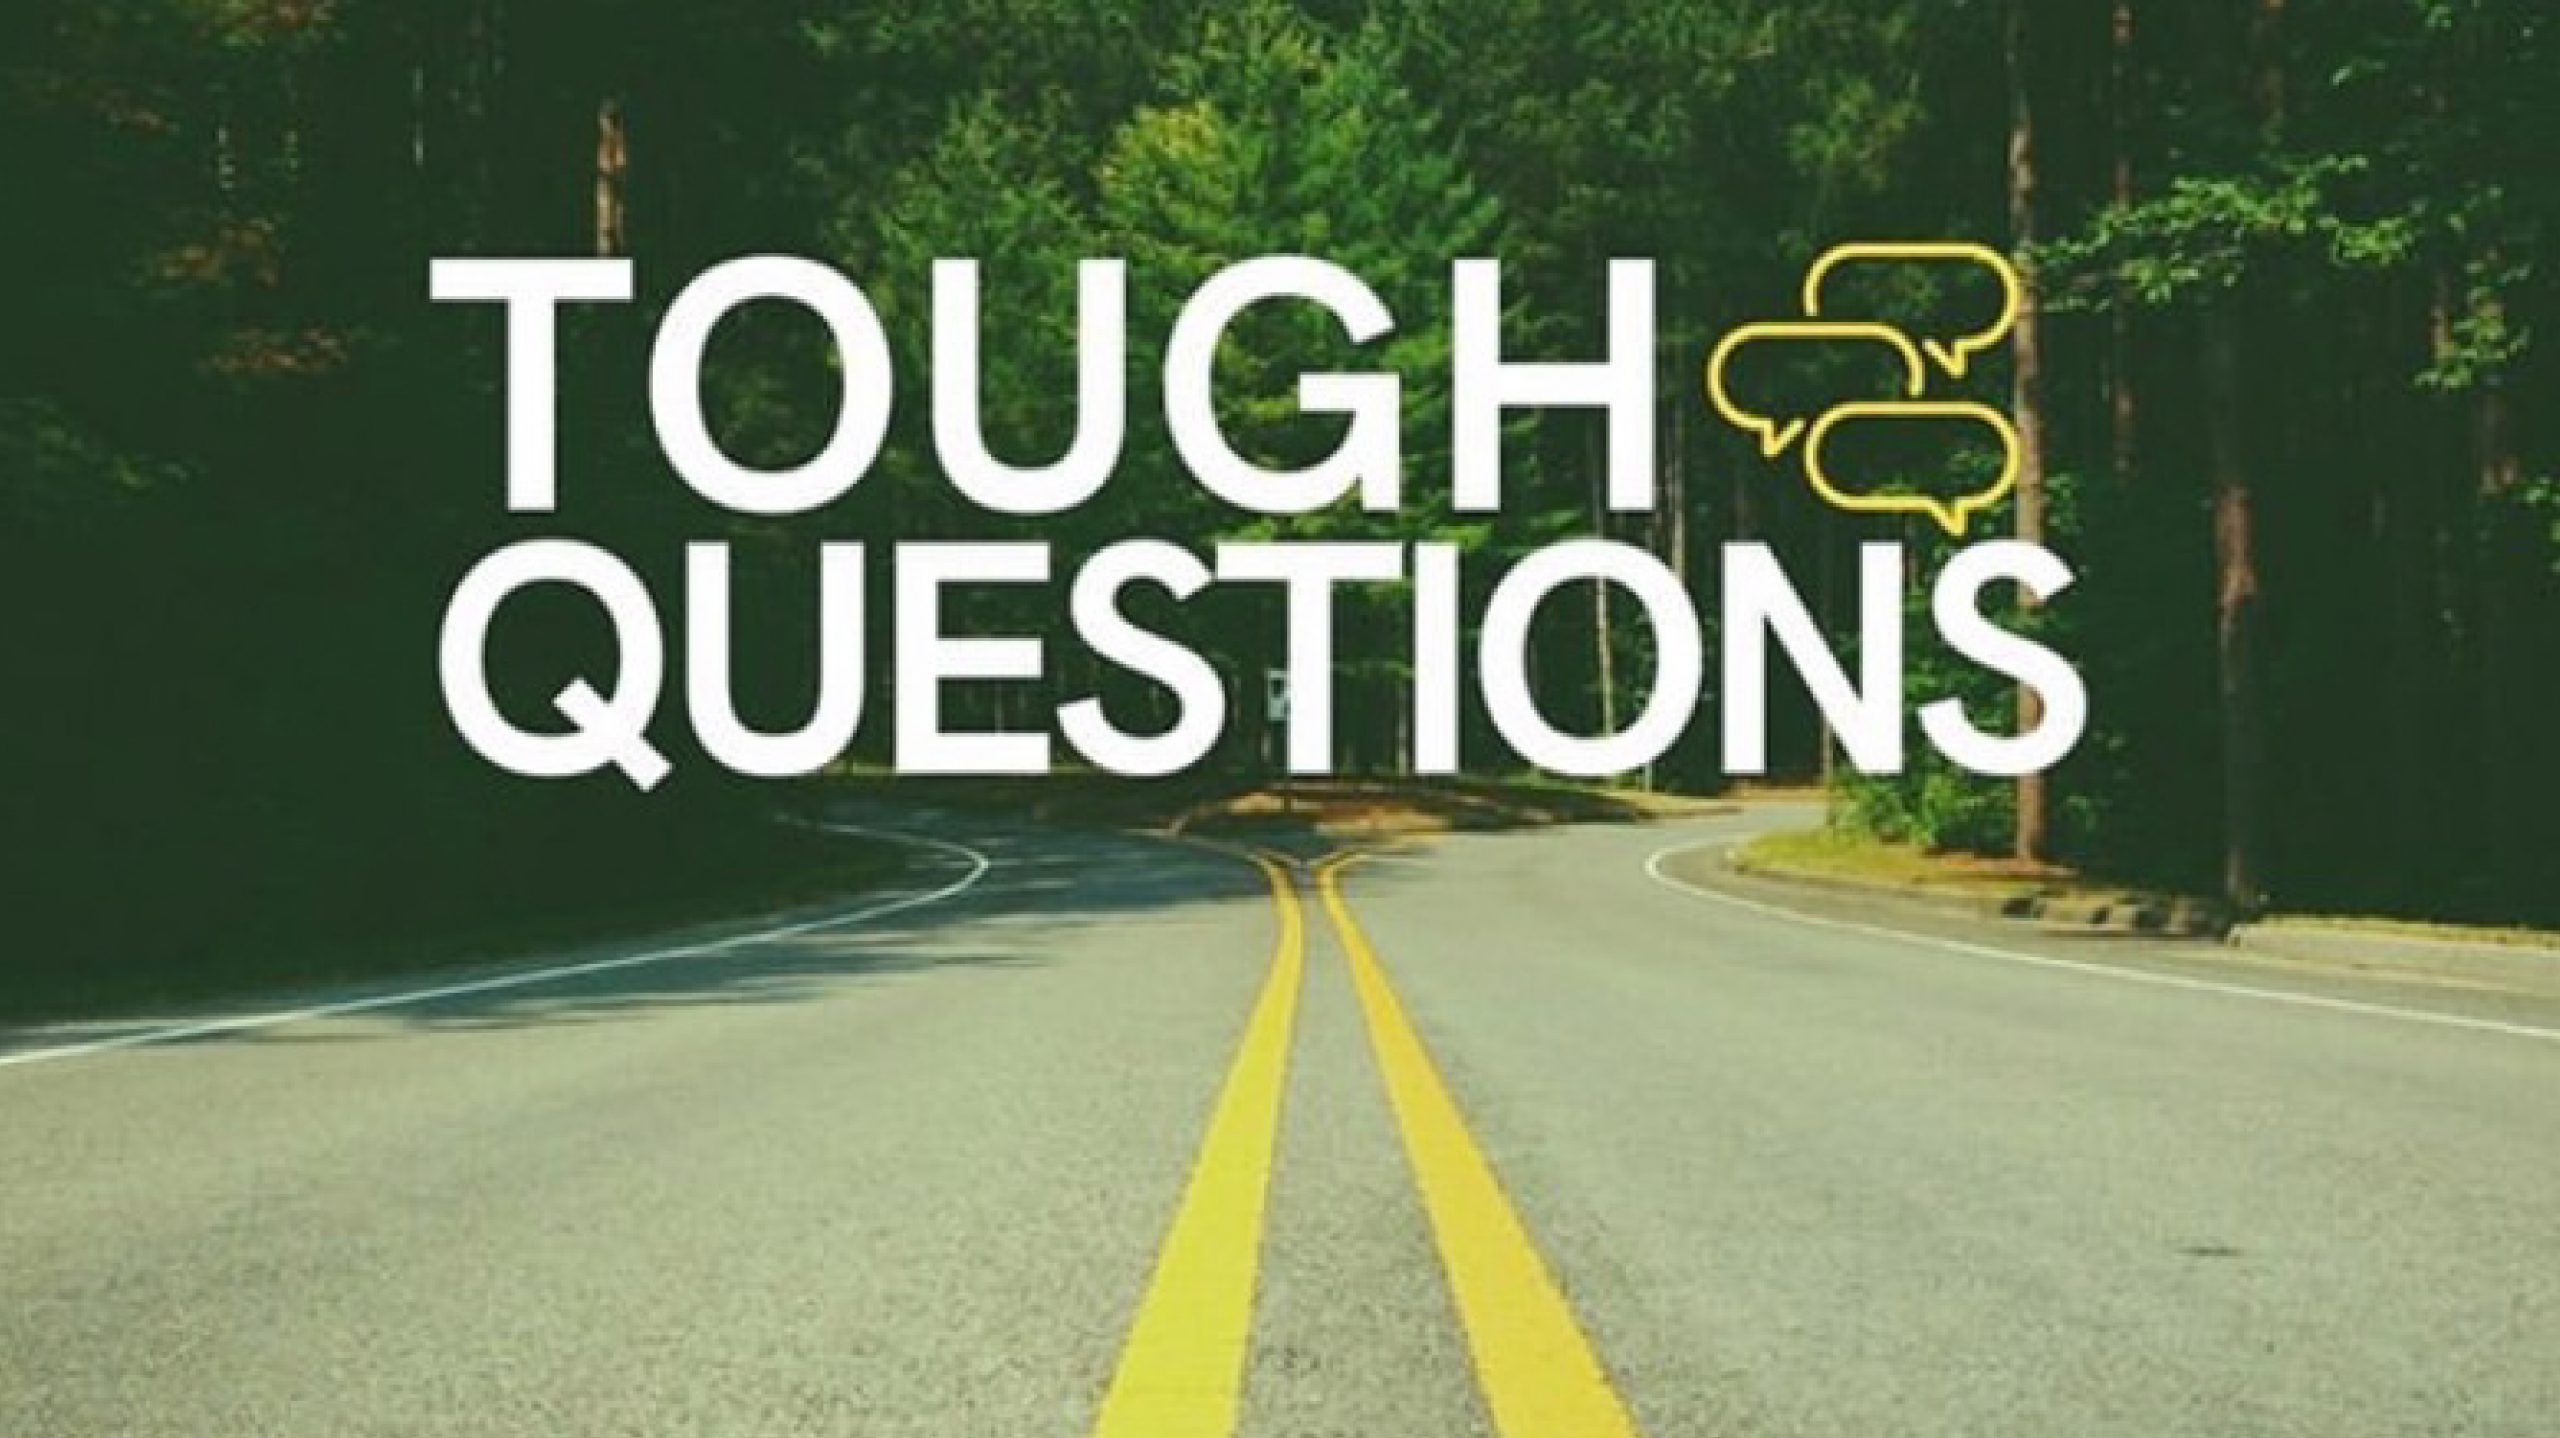 Tough QuestionsCover for Facebook- 828 x 465 px@300x-100